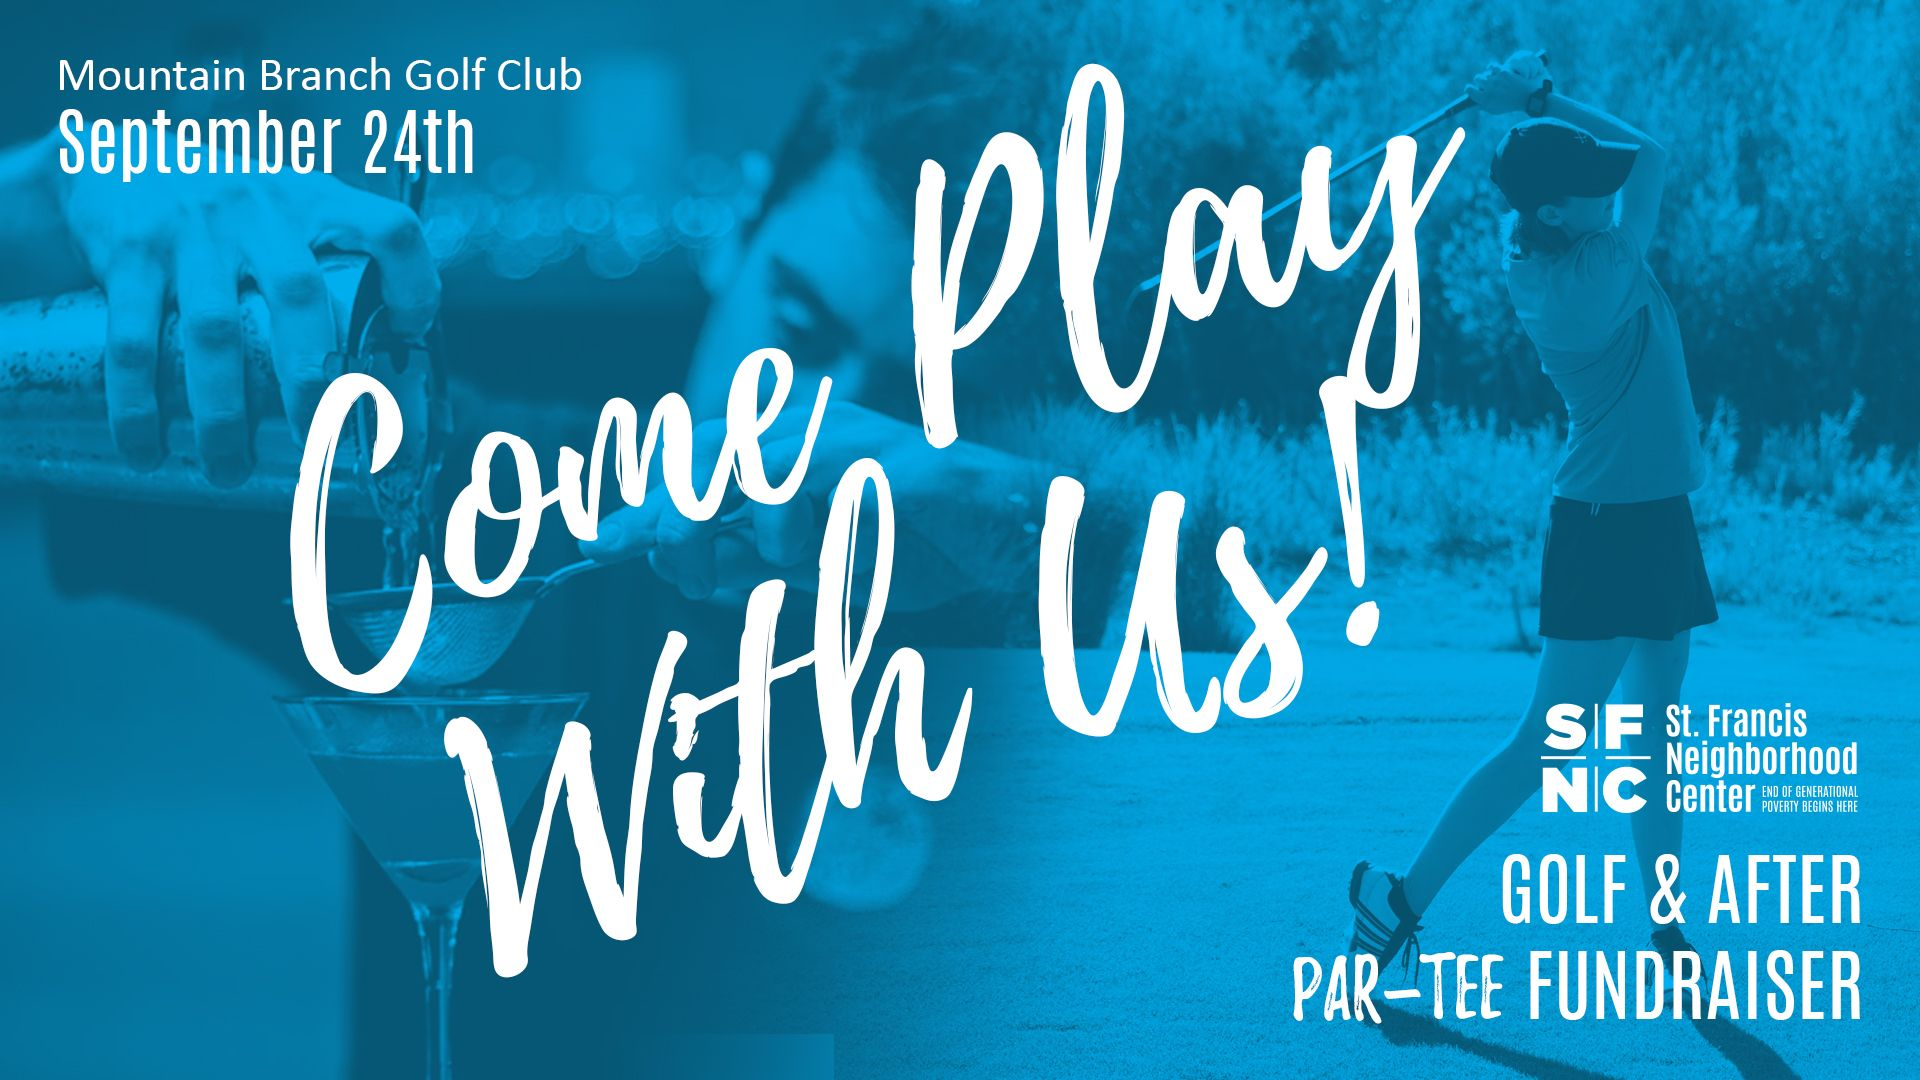 Come Play With Us! Golf & After Par-tee Fundraiser